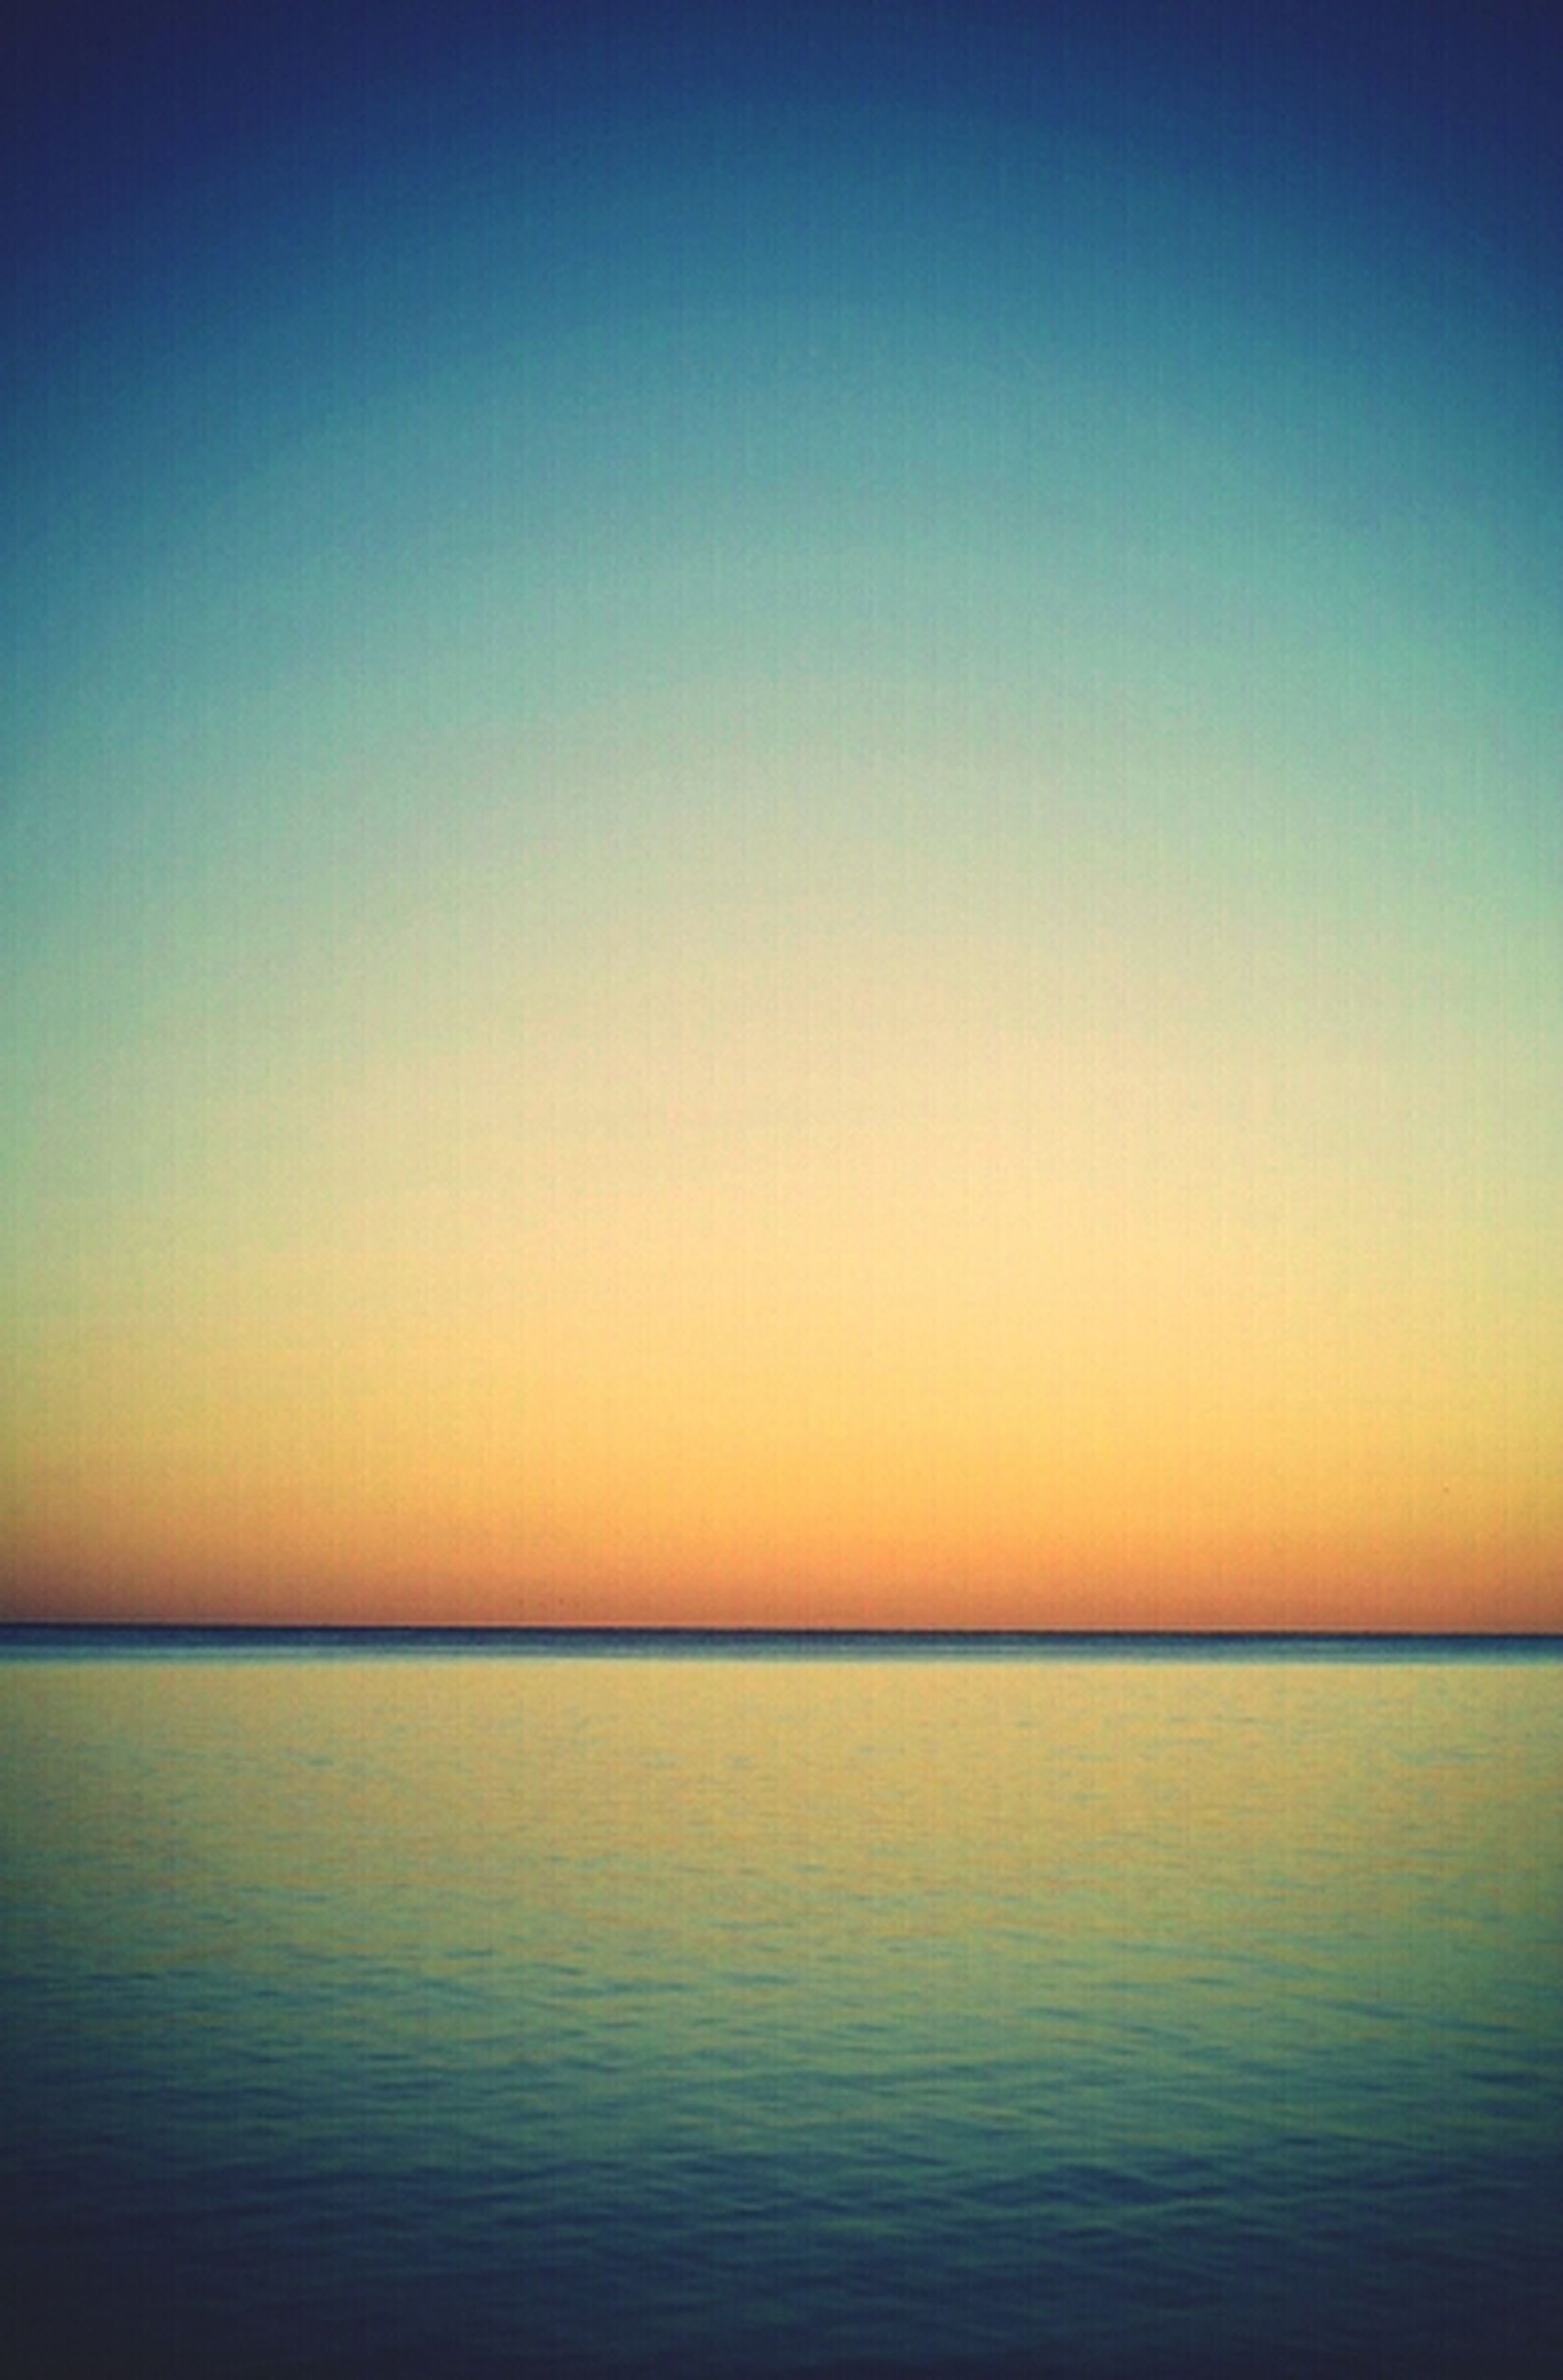 sea, water, copy space, tranquil scene, scenics, clear sky, tranquility, horizon over water, sunset, waterfront, beauty in nature, nature, idyllic, blue, orange color, rippled, seascape, dusk, calm, ocean